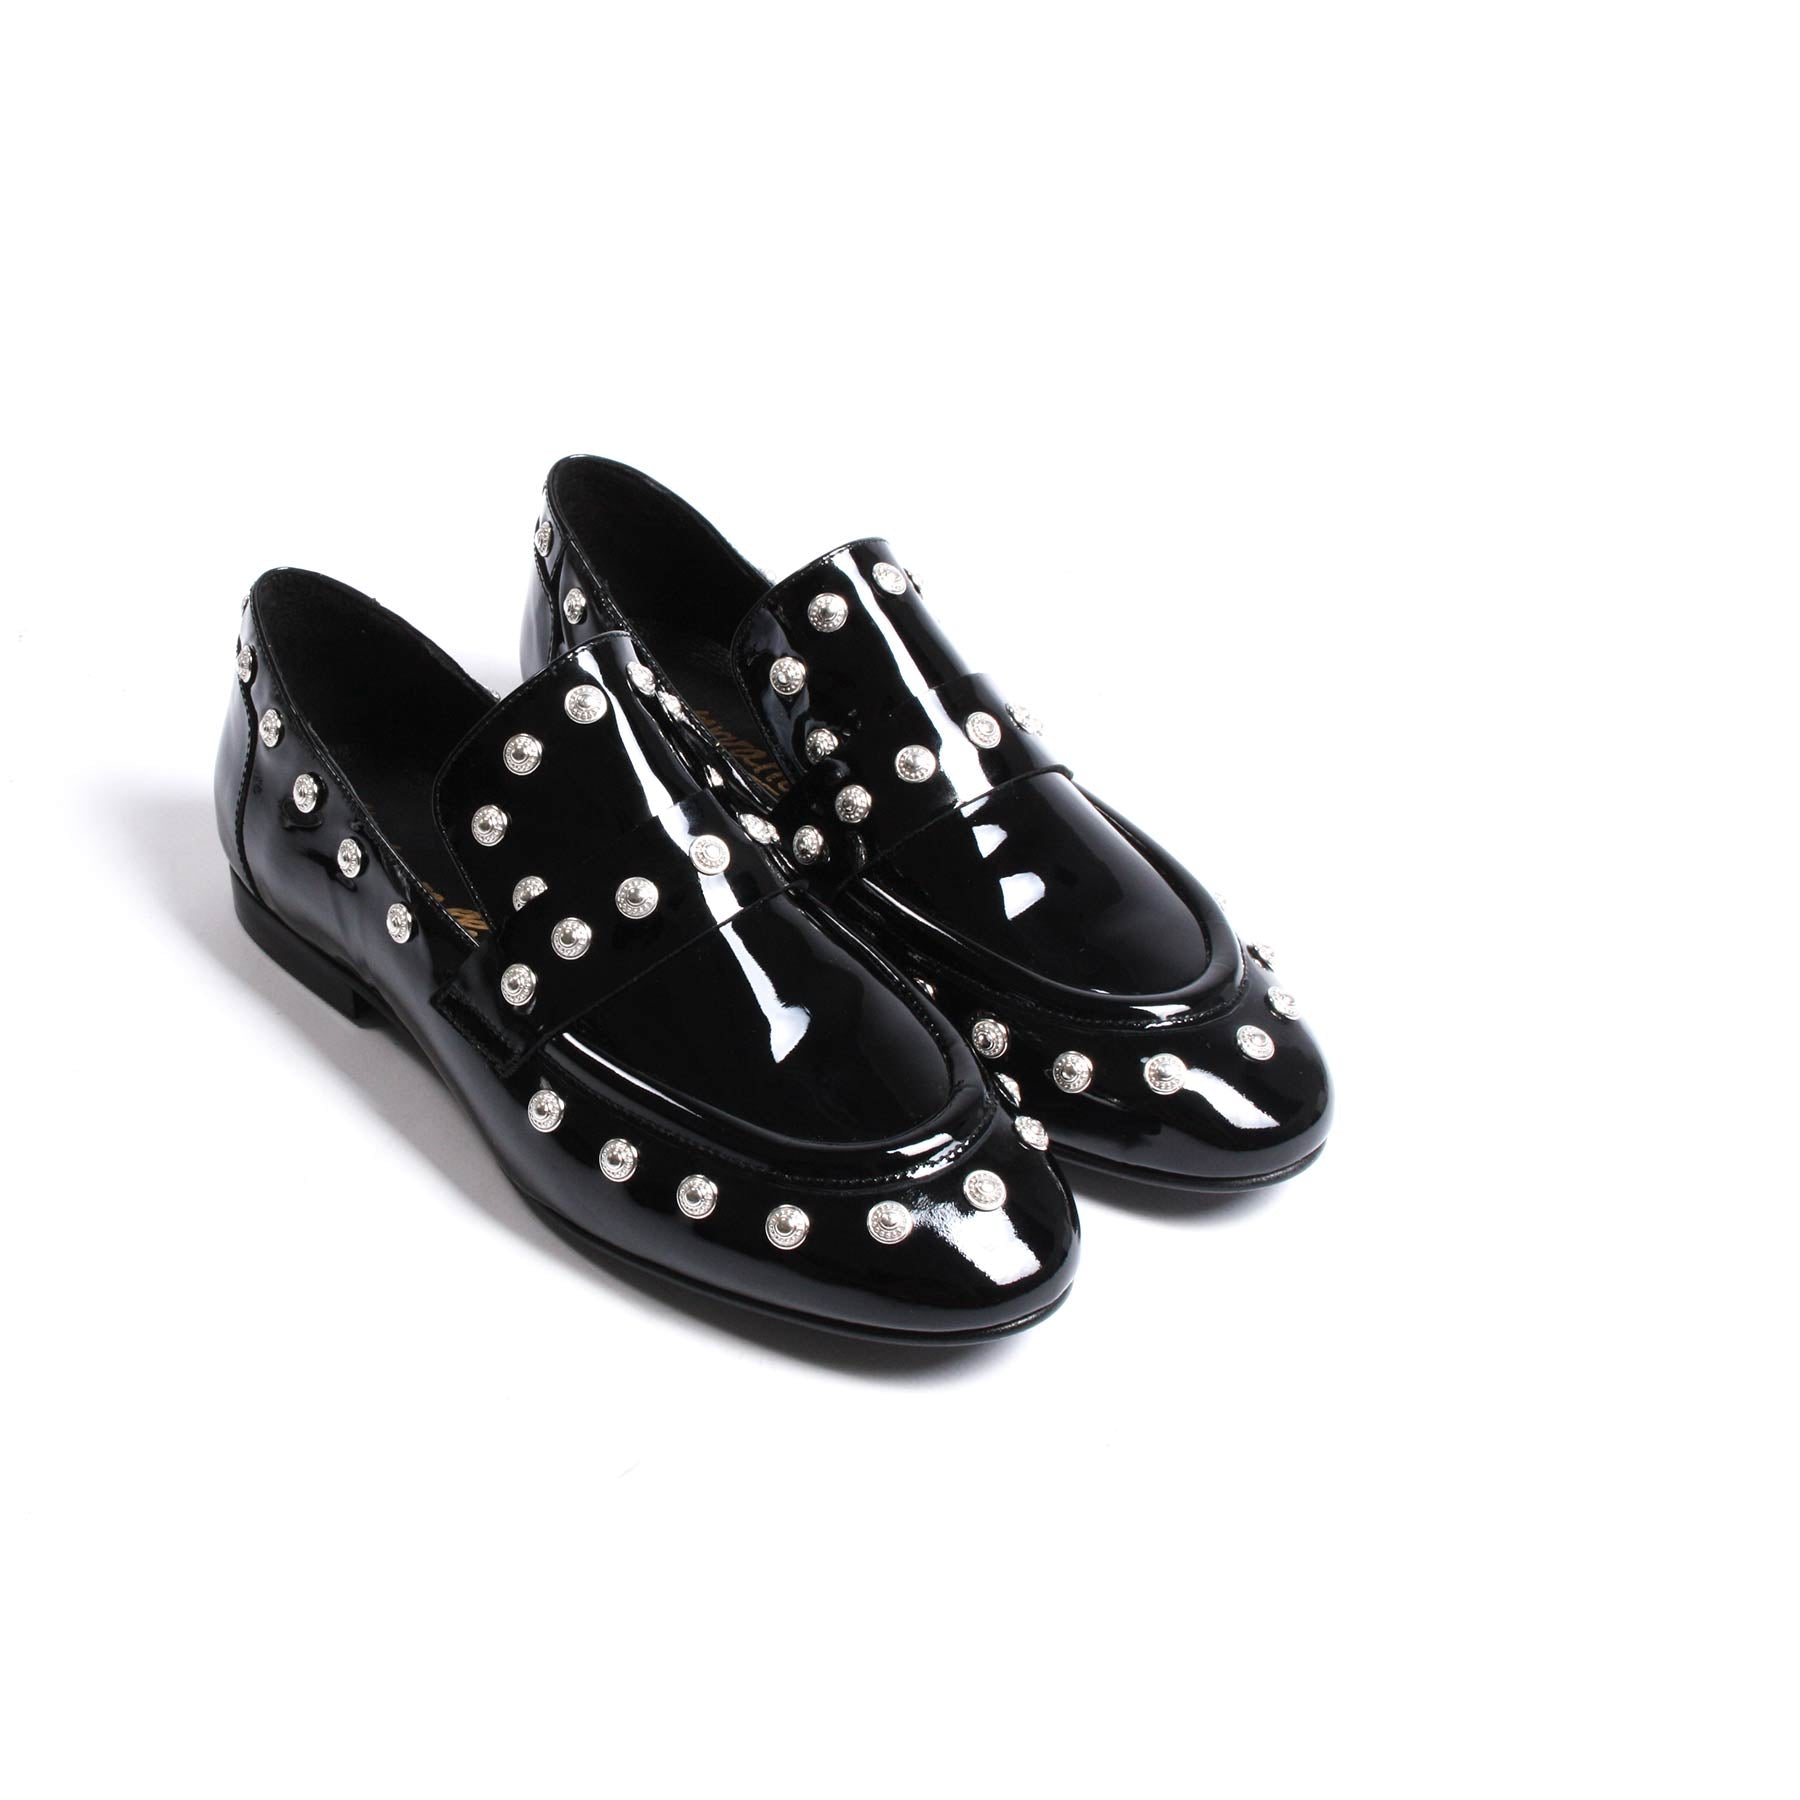 Chispas Black Patent Leather